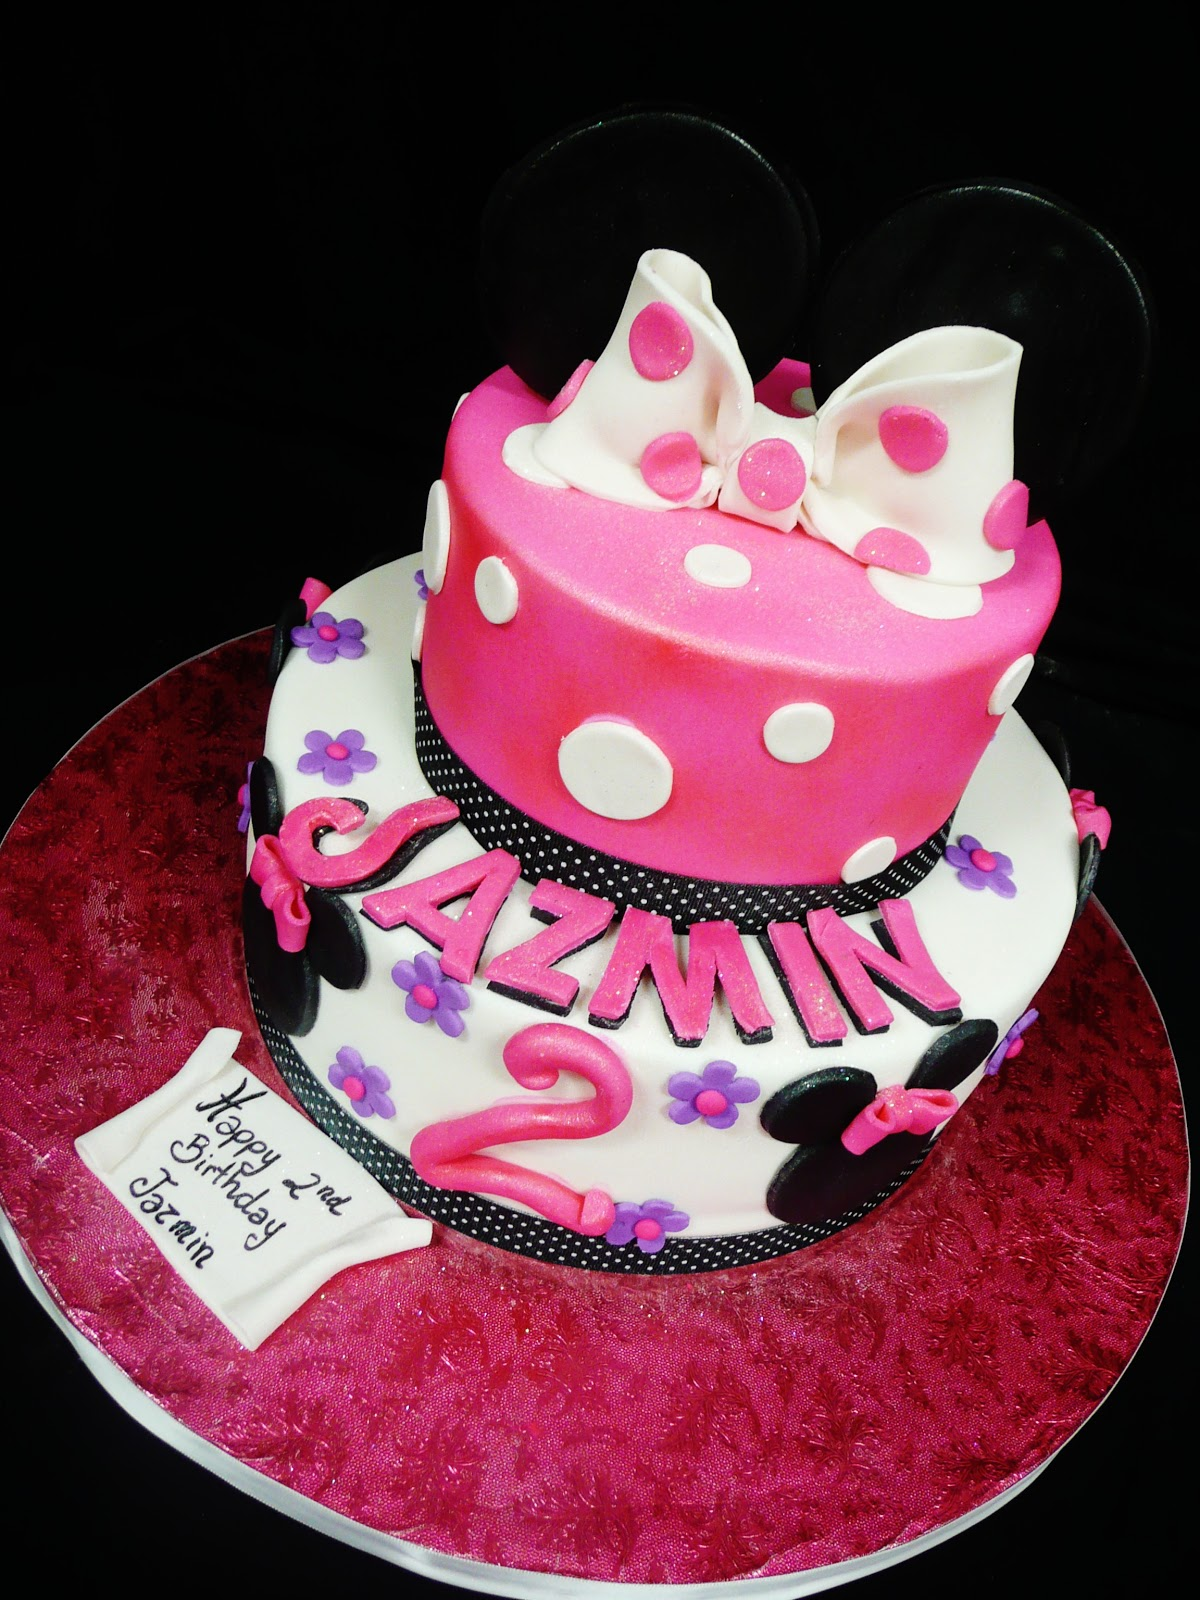 birthday cakes minnie mouse image inspiration of cake and baking with roxanas cakes minnie mouse themed birthday cake